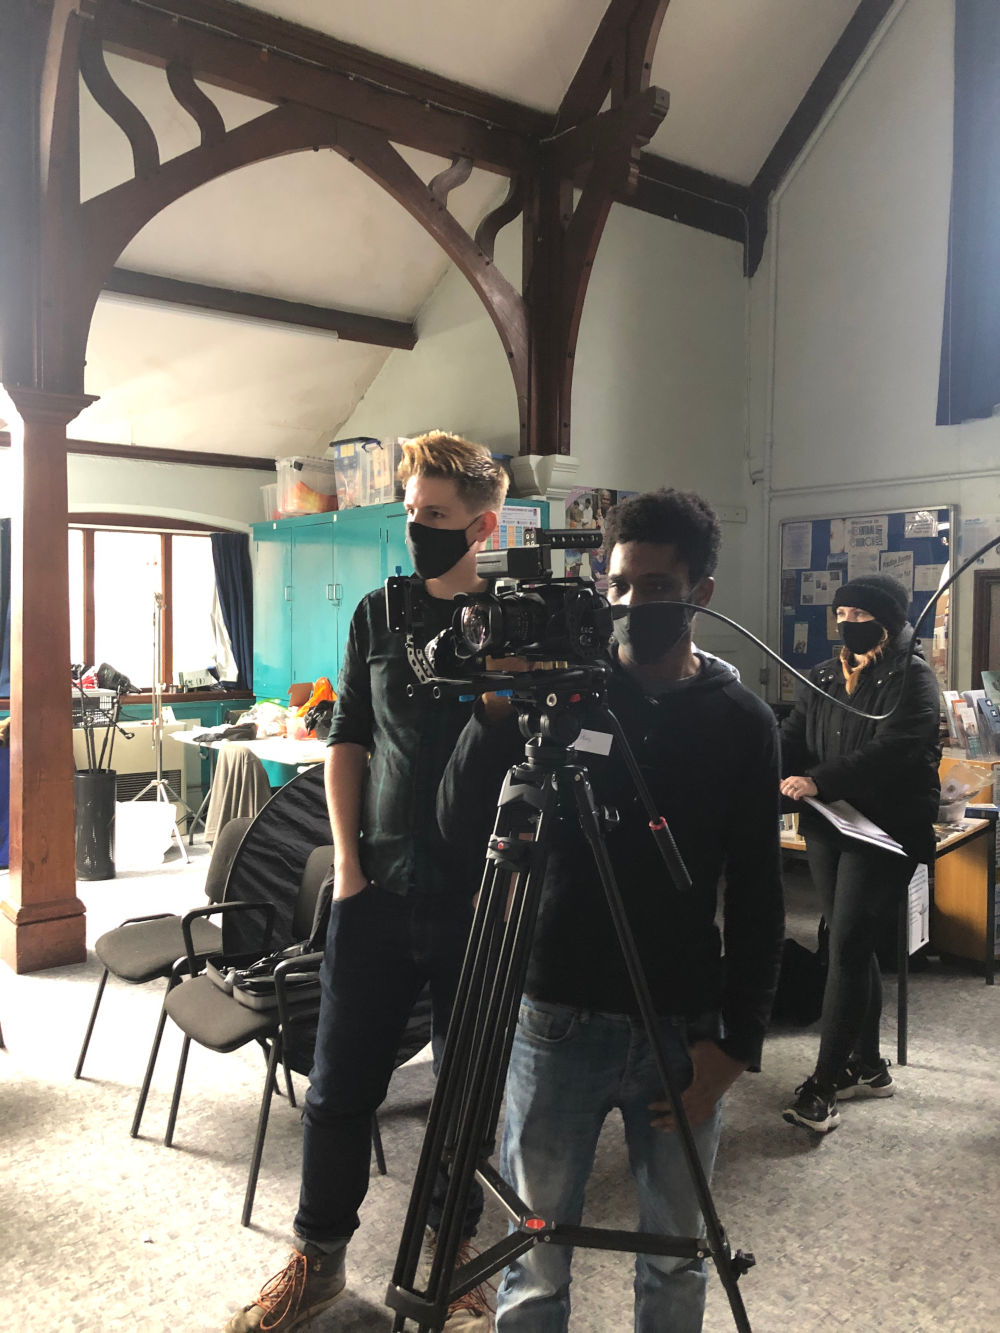 Behind the scenes image from Liam Calvert's Voyager short film